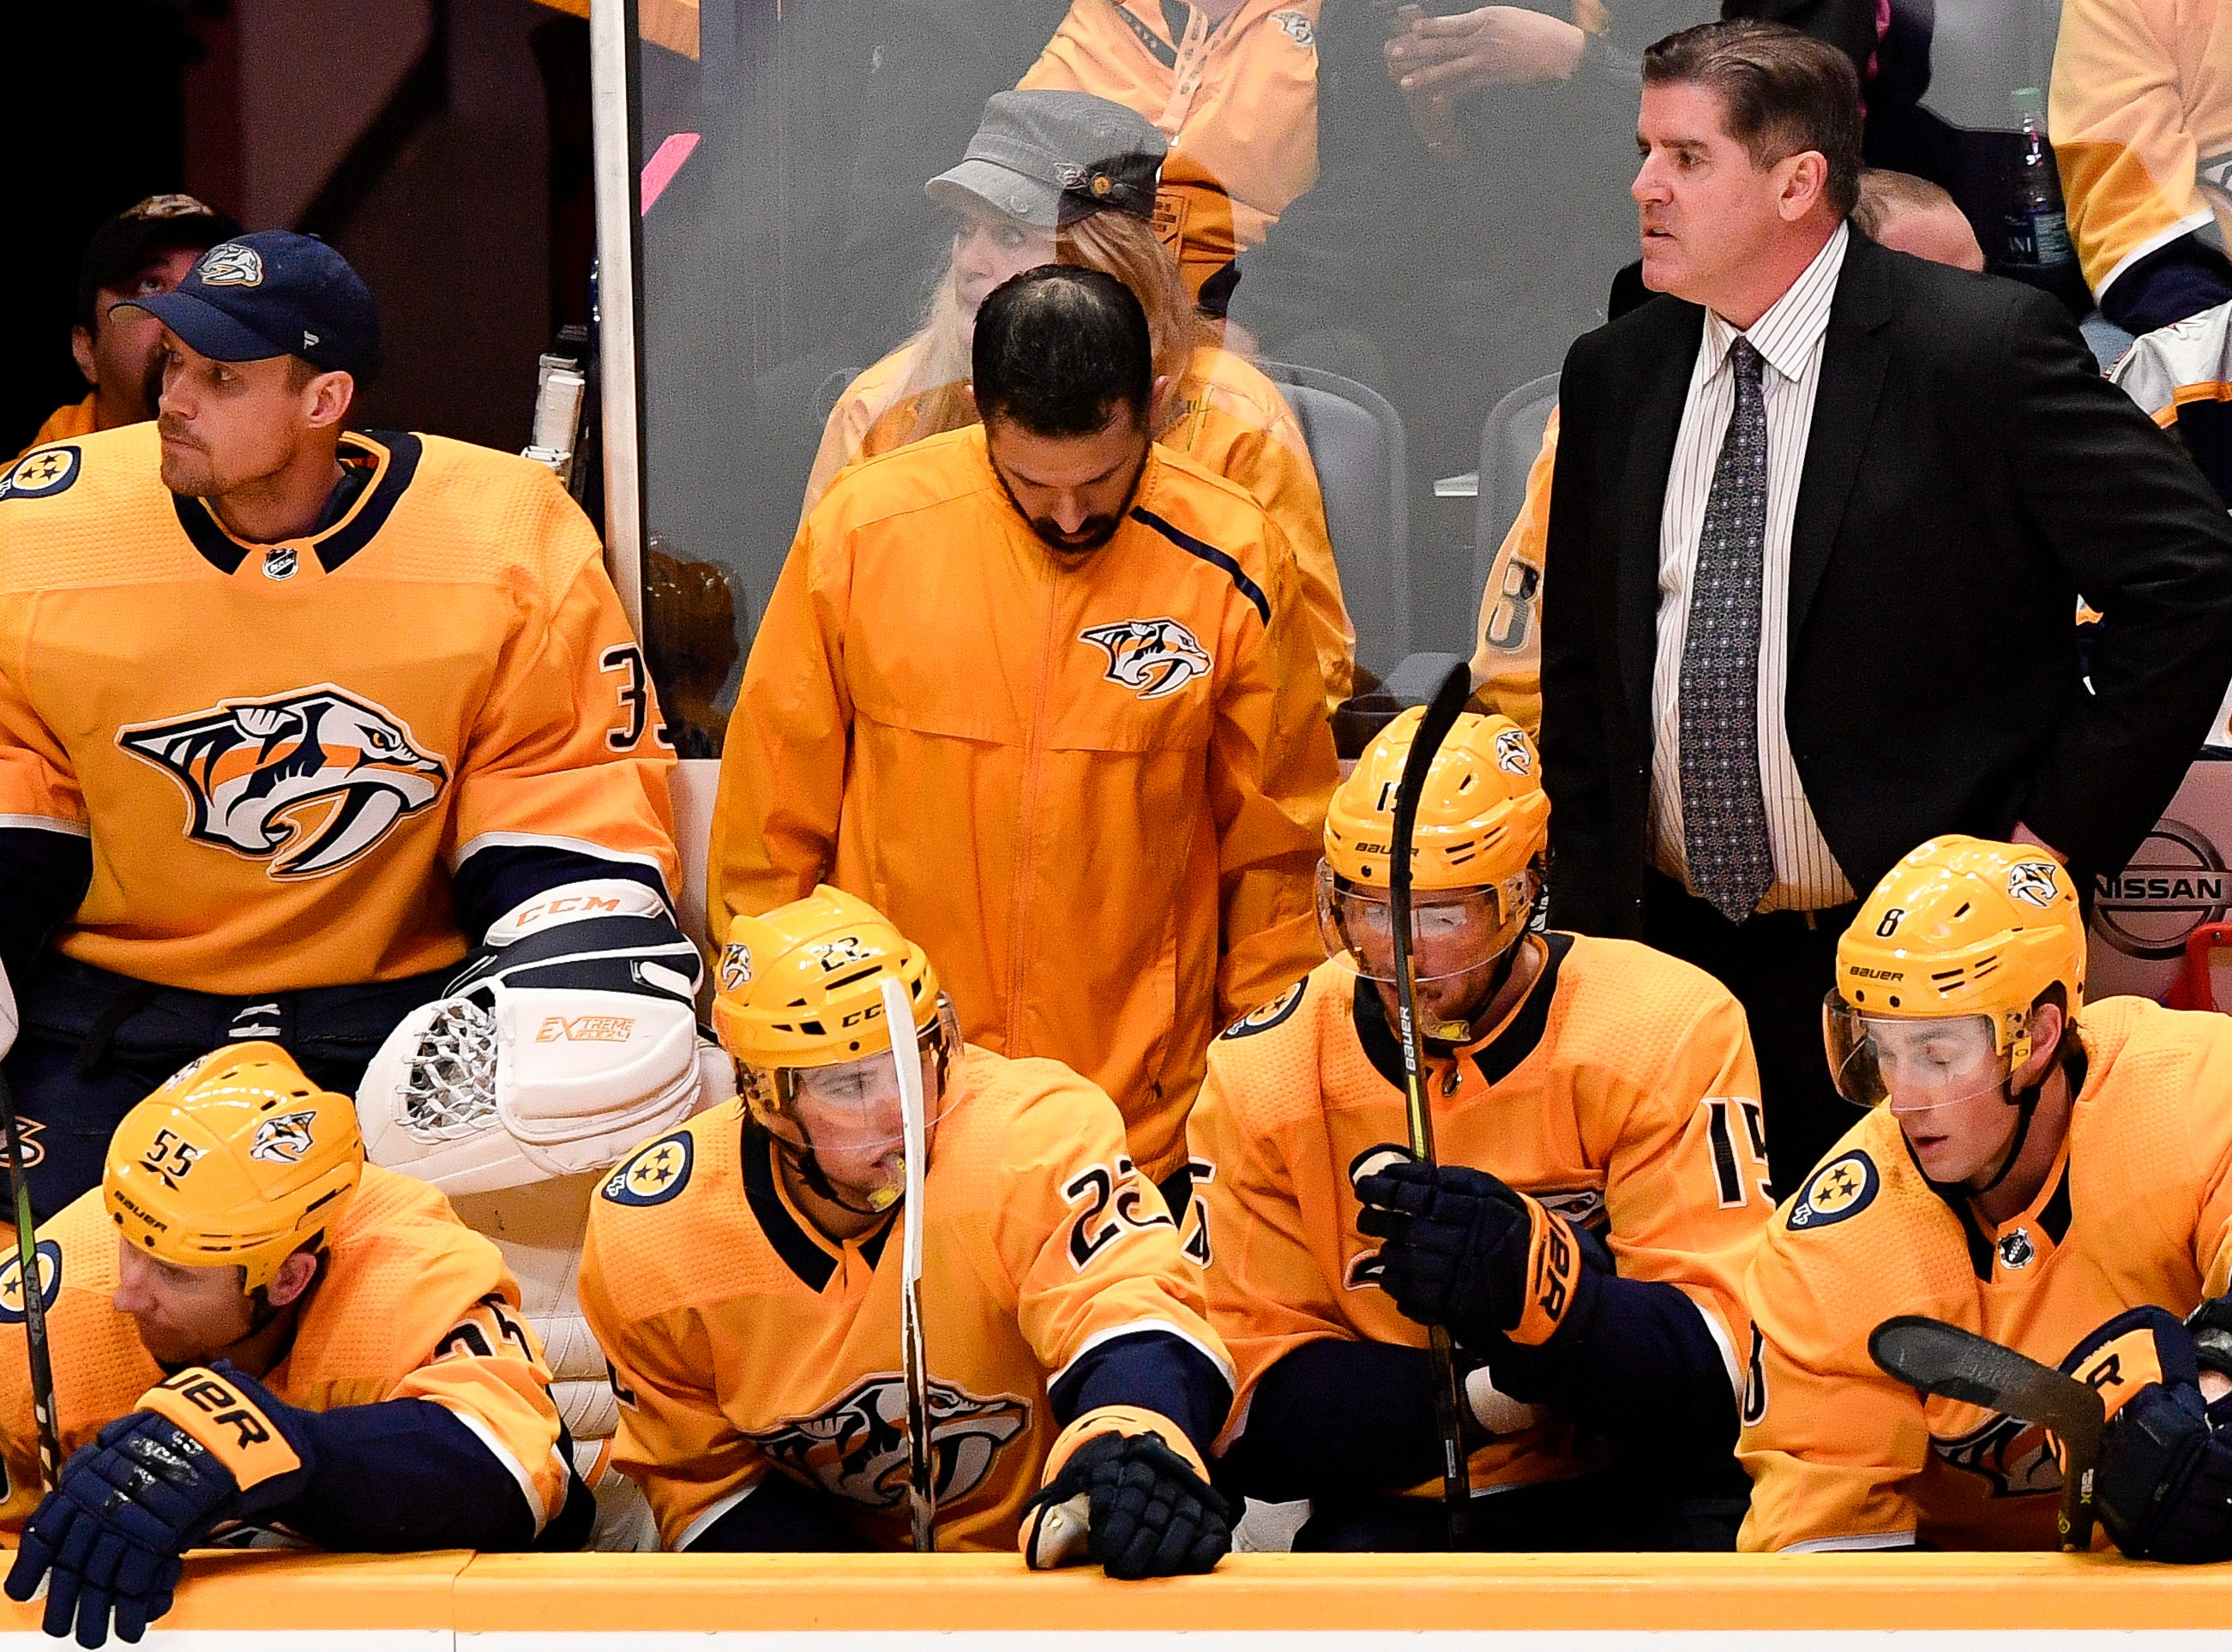 Nashville Predators coach Peter Laviolette watches his team face the Dallas Stars during the third period at Bridgestone Arena in Nashville, Tenn., Thursday, Feb. 7, 2019.